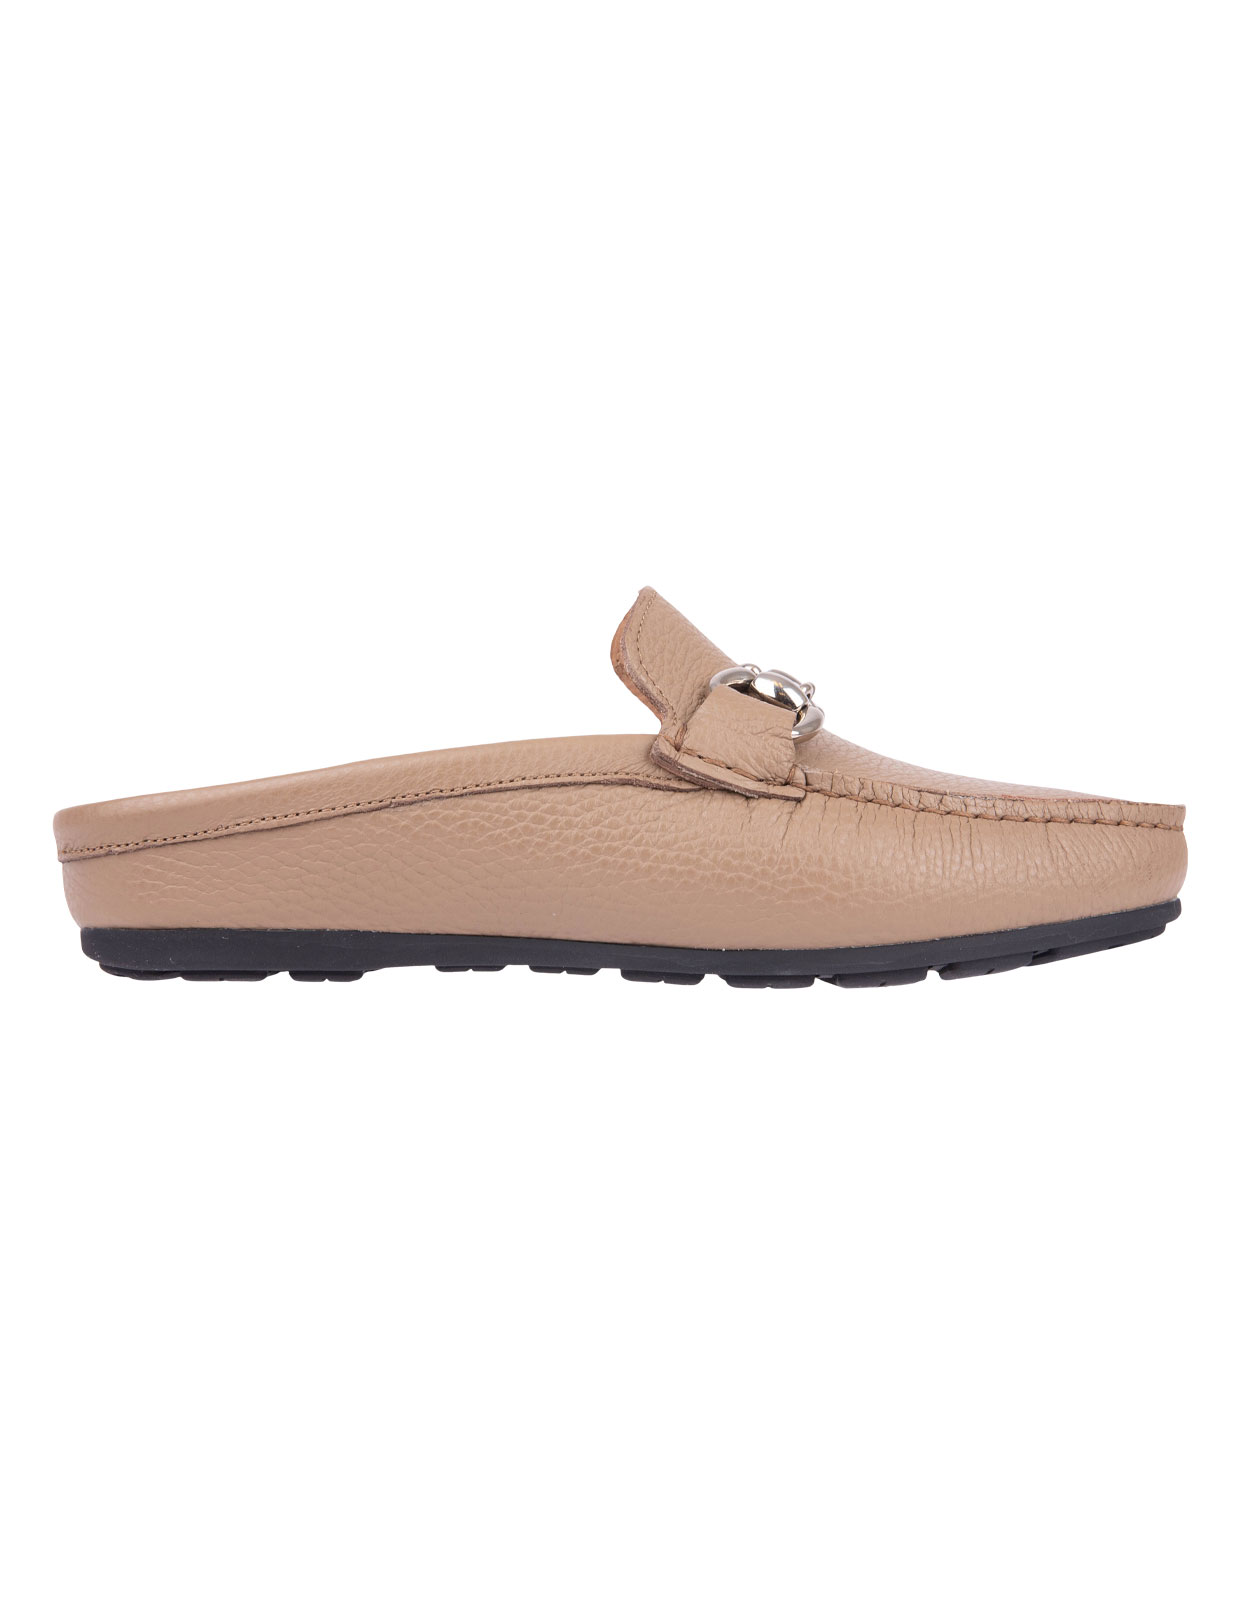 Slipin Loafer BEIGE